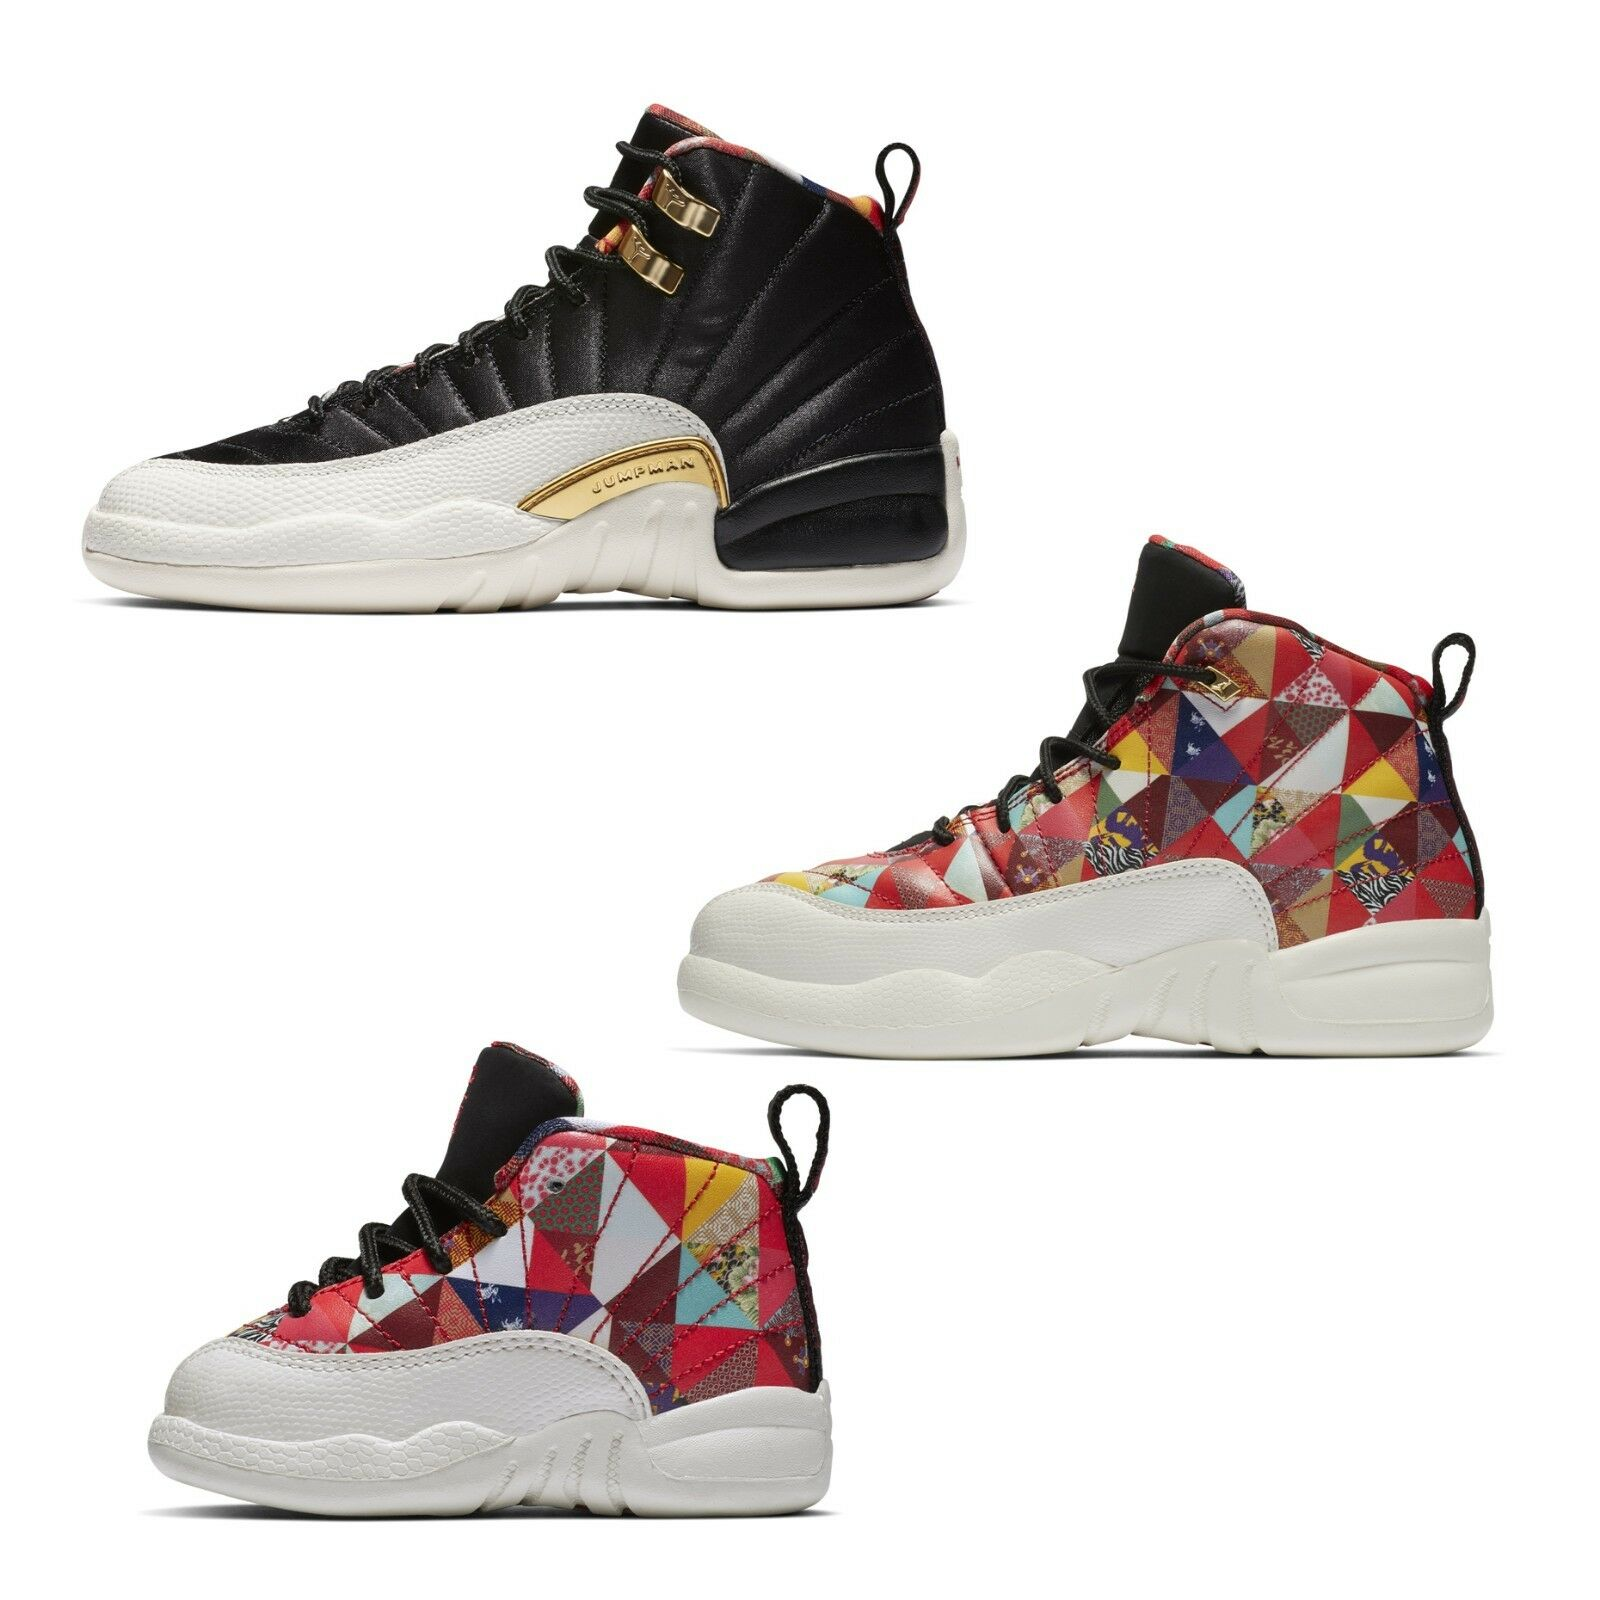 new concept 7de3b f5b7f Details about Air Jordan 12 Retro CNY 2019 Chinese New Year AJ12 Womens  Kids Youth GS PS TD